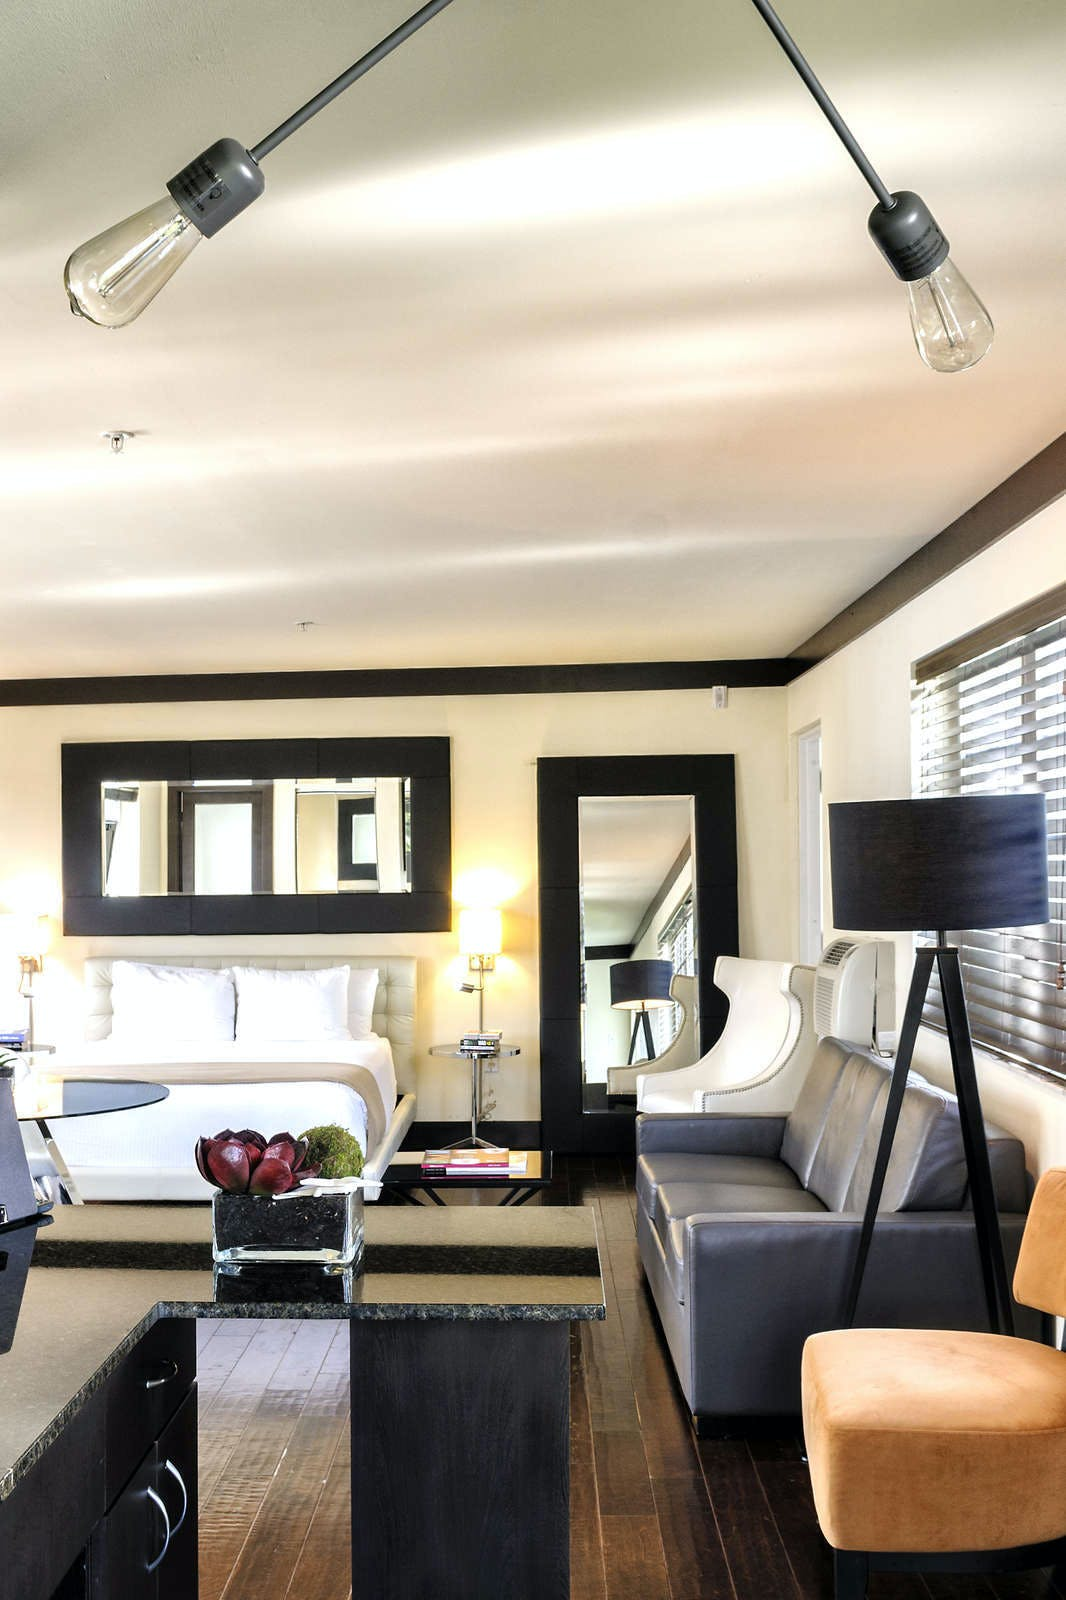 Lincoln Arms Suites